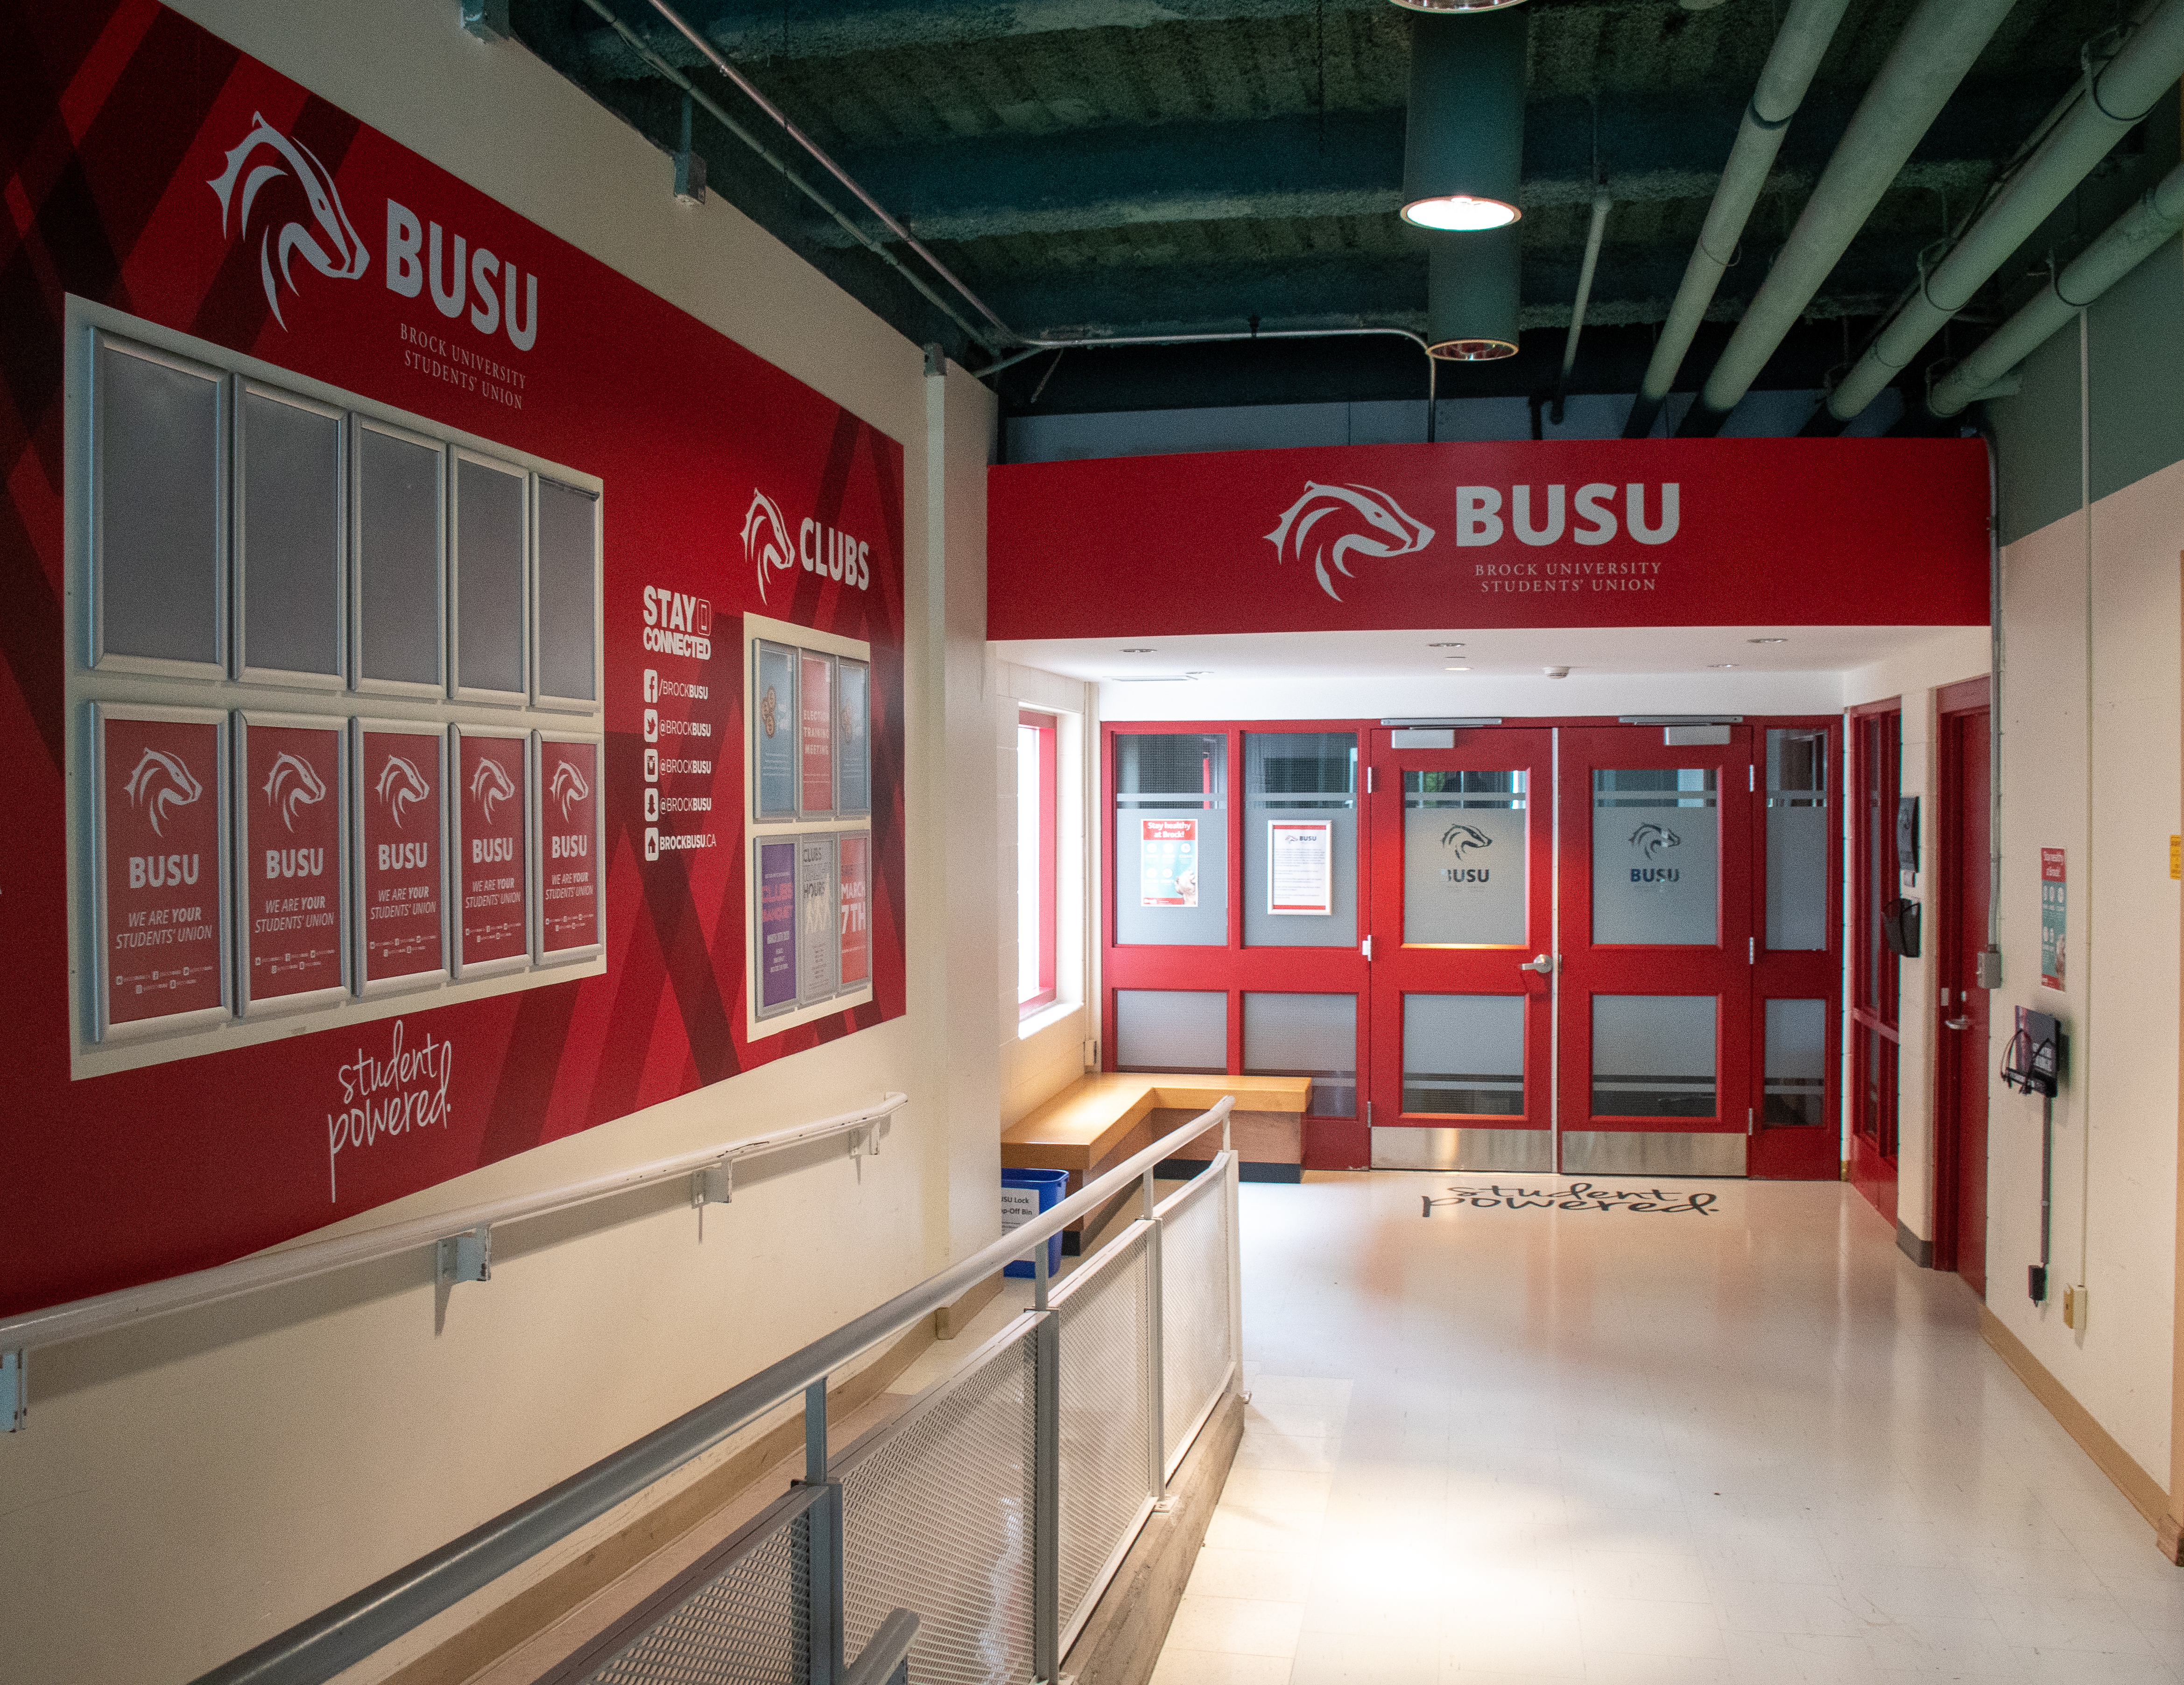 Engaging with student government: BUSU and BUSAC